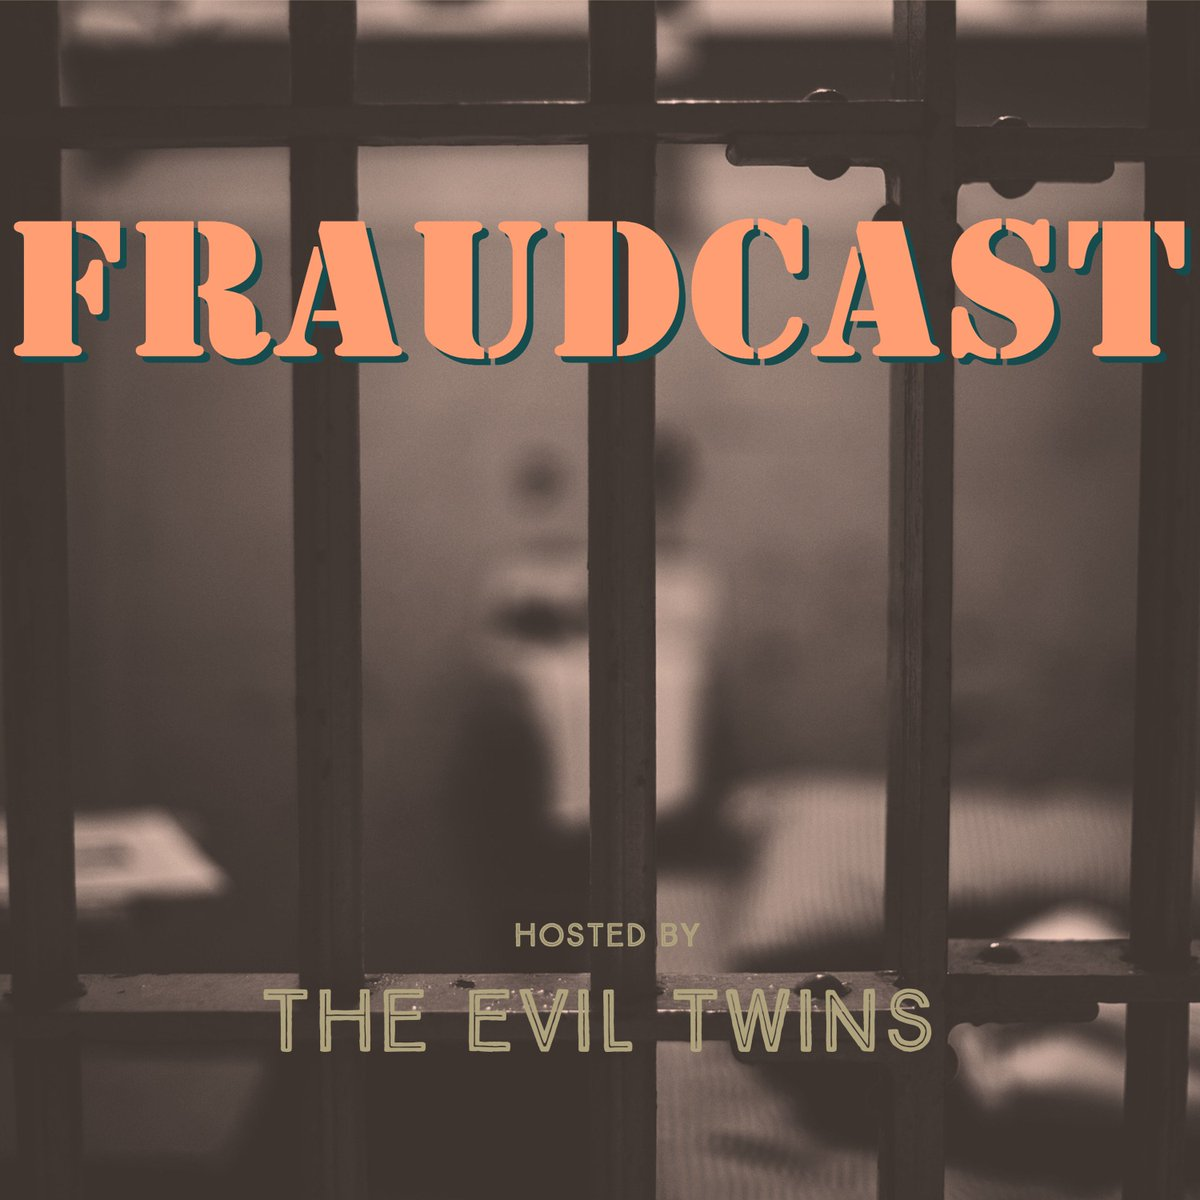 The first 3 episodes of Fraudcast are live on iTunes, Spotify, and Google Play.  In the first 2 episodes we discuss convicted Ponzi Schemer Marc Dreier, and episode 3 covers Billy McFarland and Fyre Festival.  Check &#39;em out! <br>http://pic.twitter.com/rqAKP5deHr